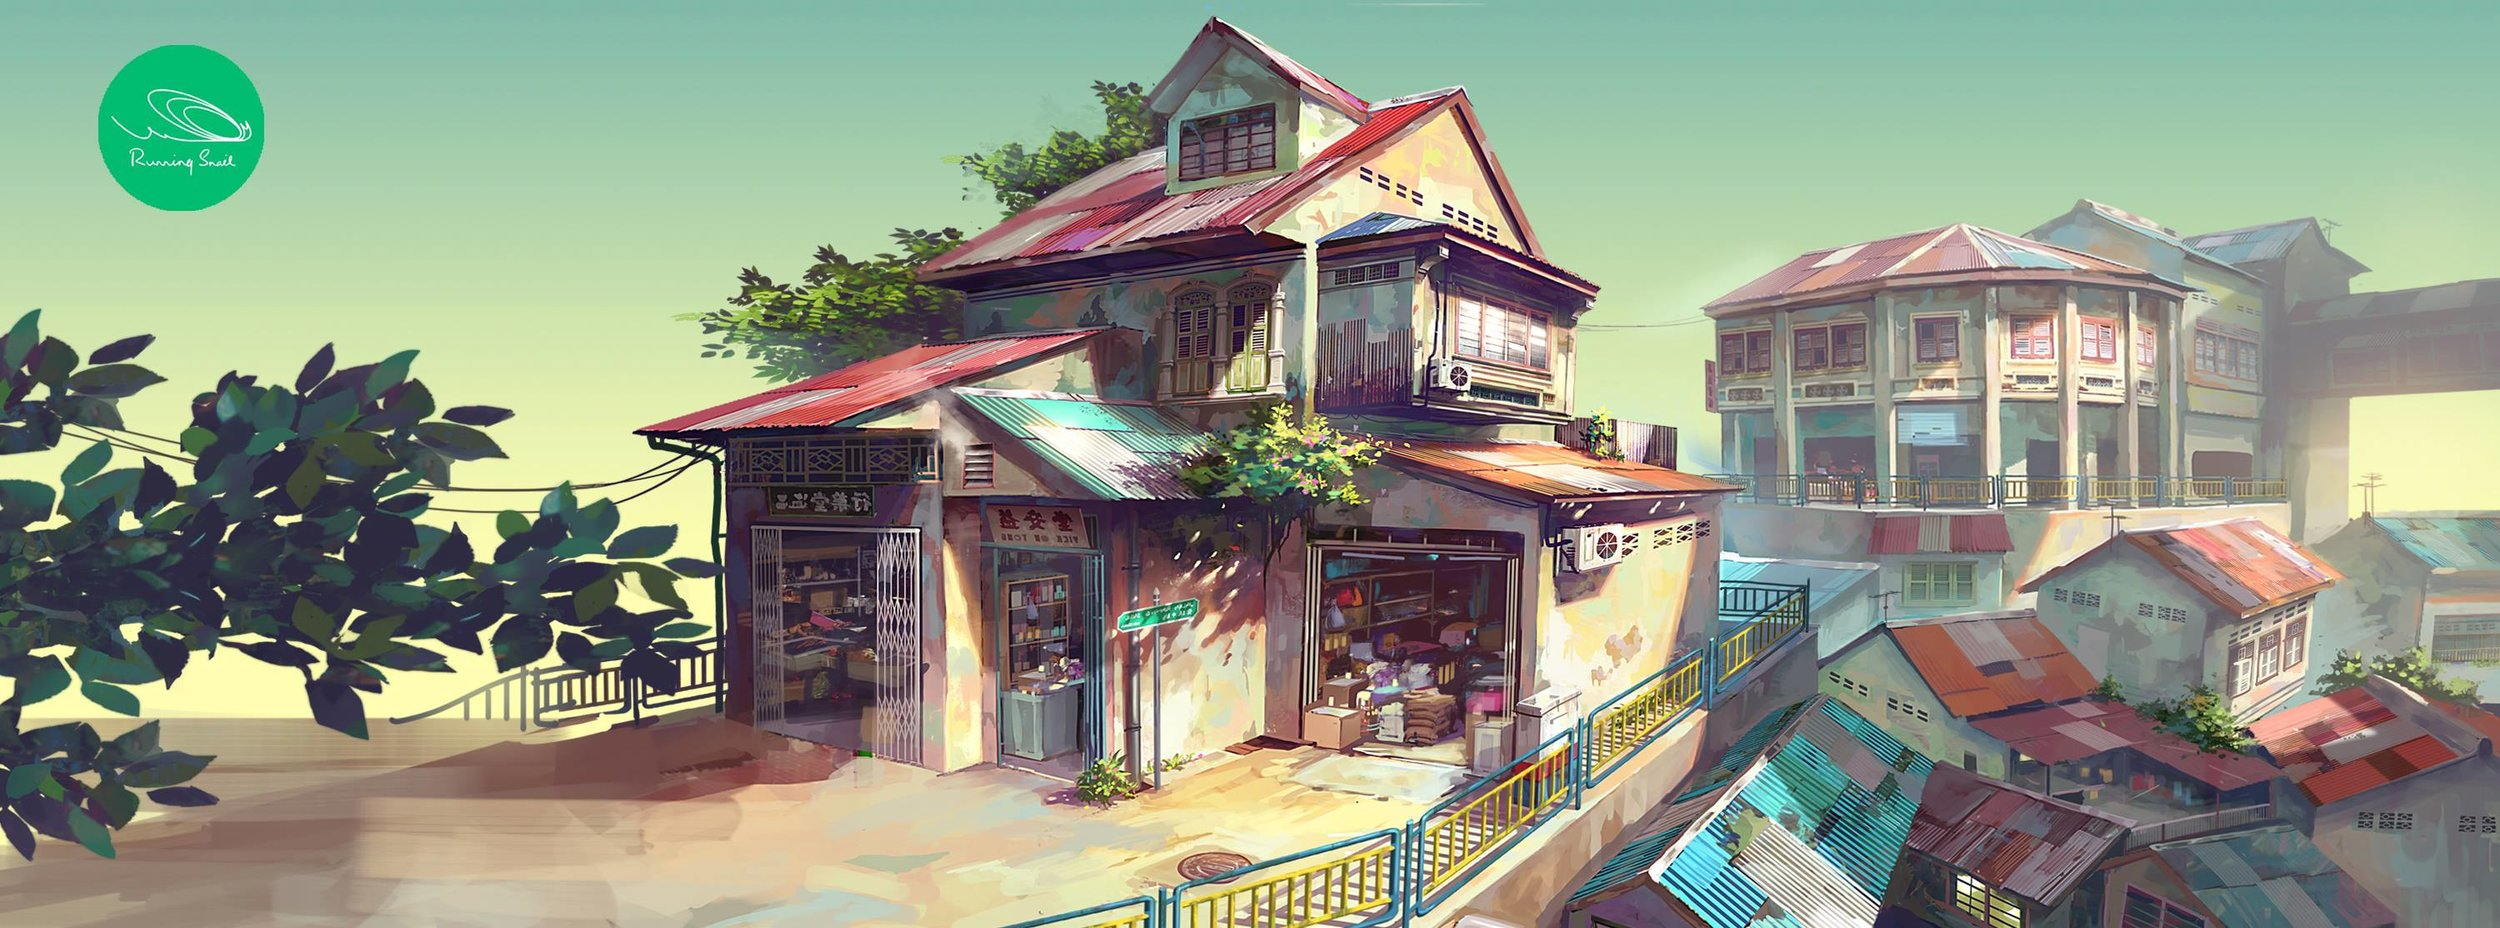 Illustration by :  Chong Fei Giap